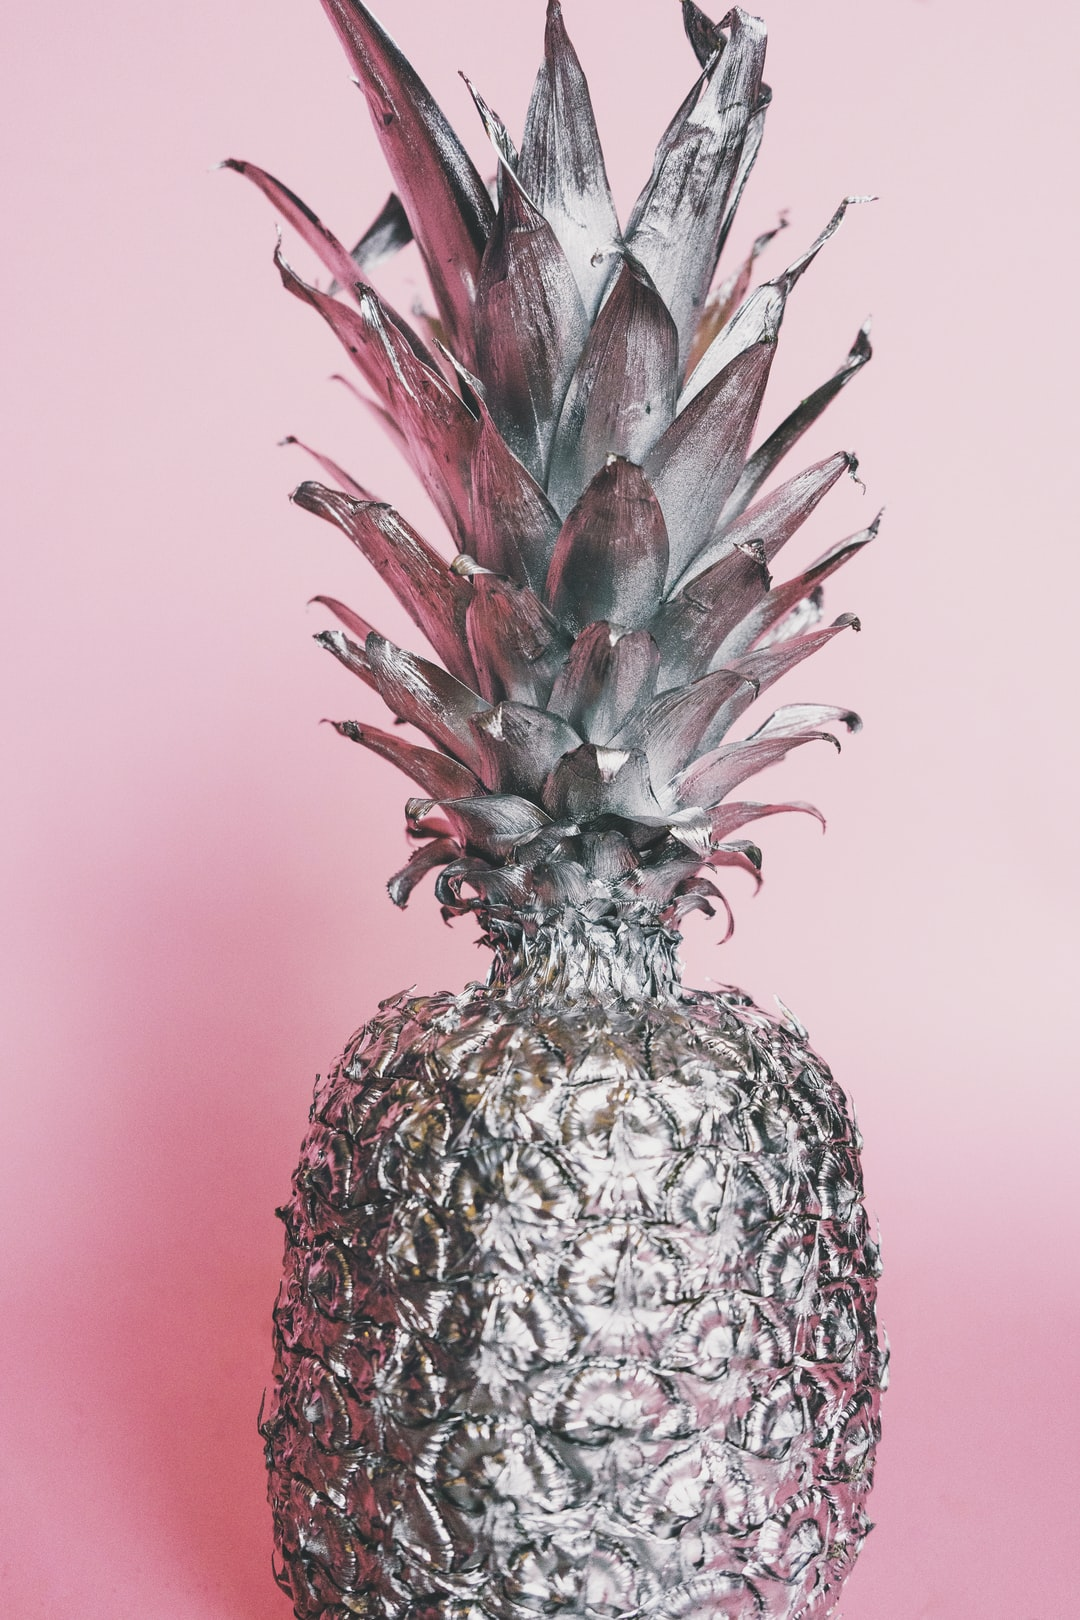 free image of silver pineapple